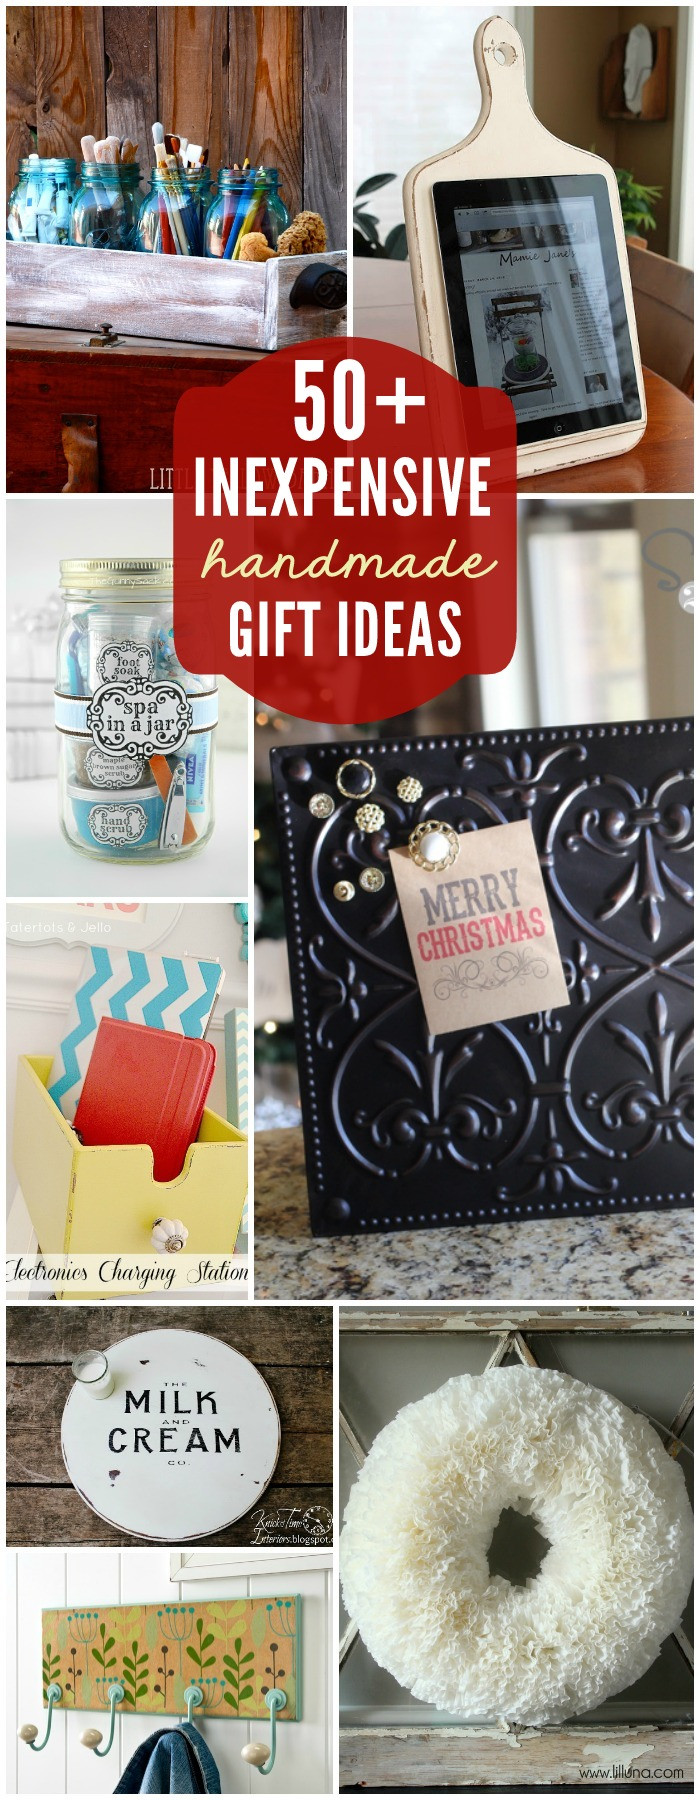 Best ideas about Unique Holiday Gift Ideas . Save or Pin Easy DIY Gift Ideas Now.